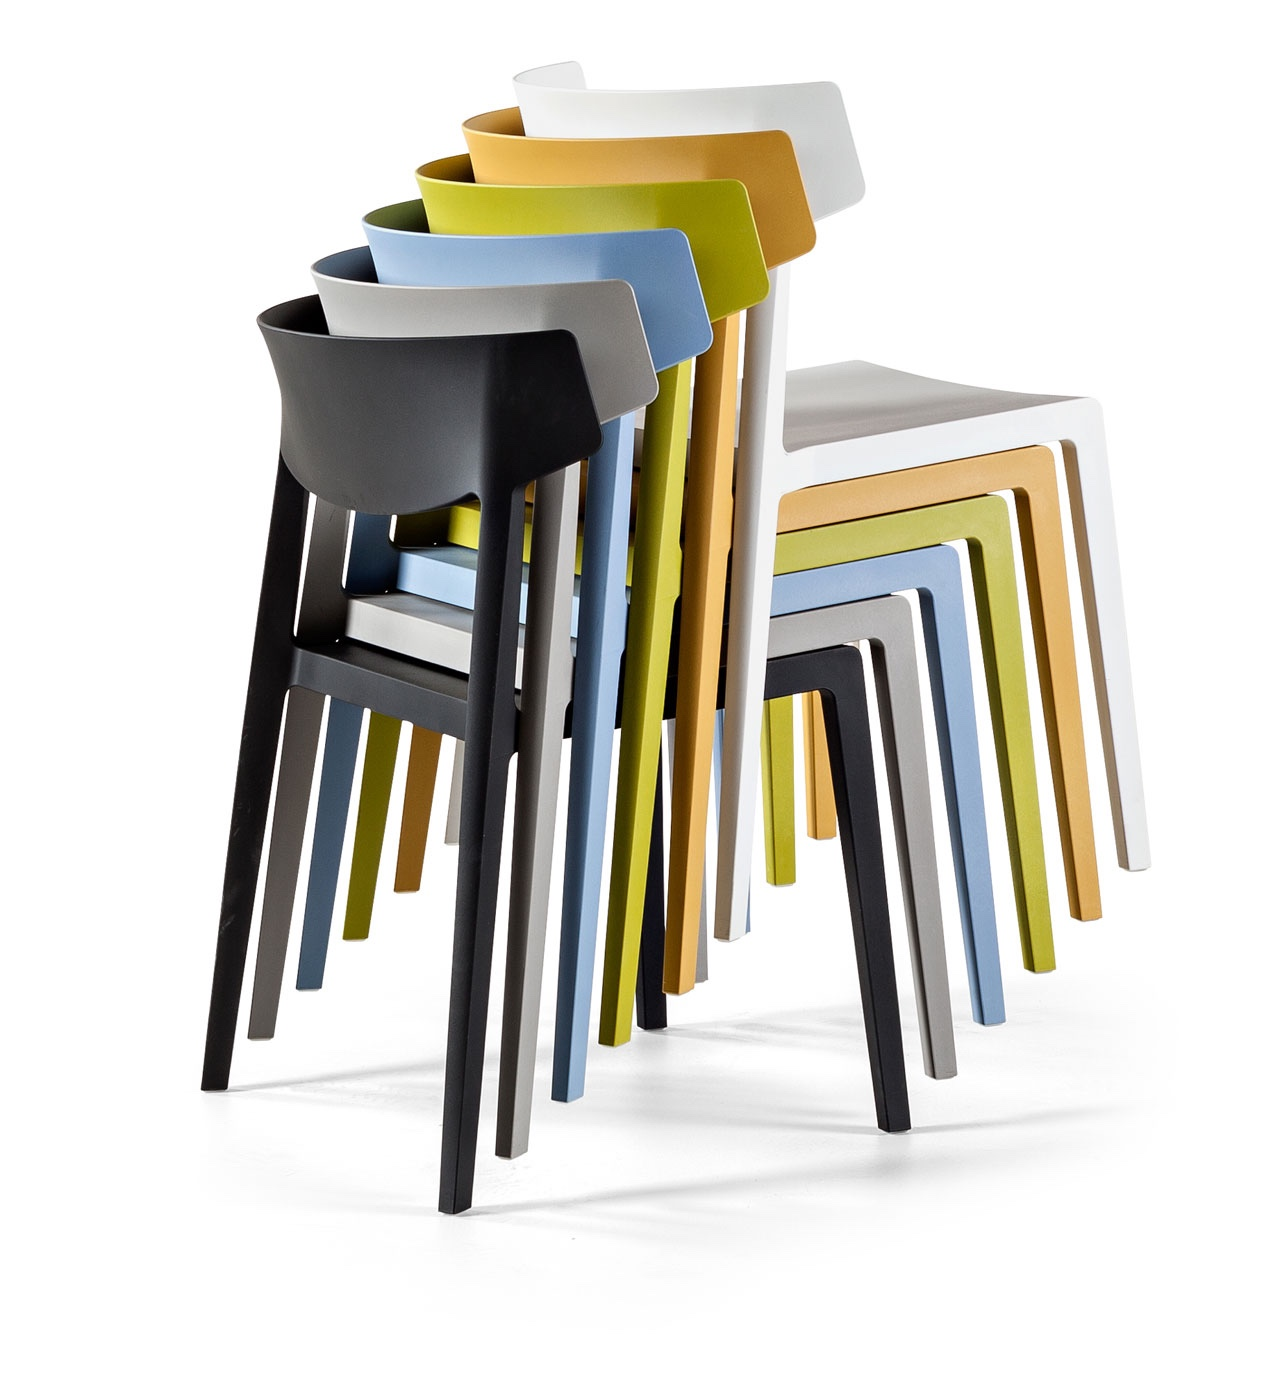 The stackable Wing chair was designed by Ramos & Bassols.